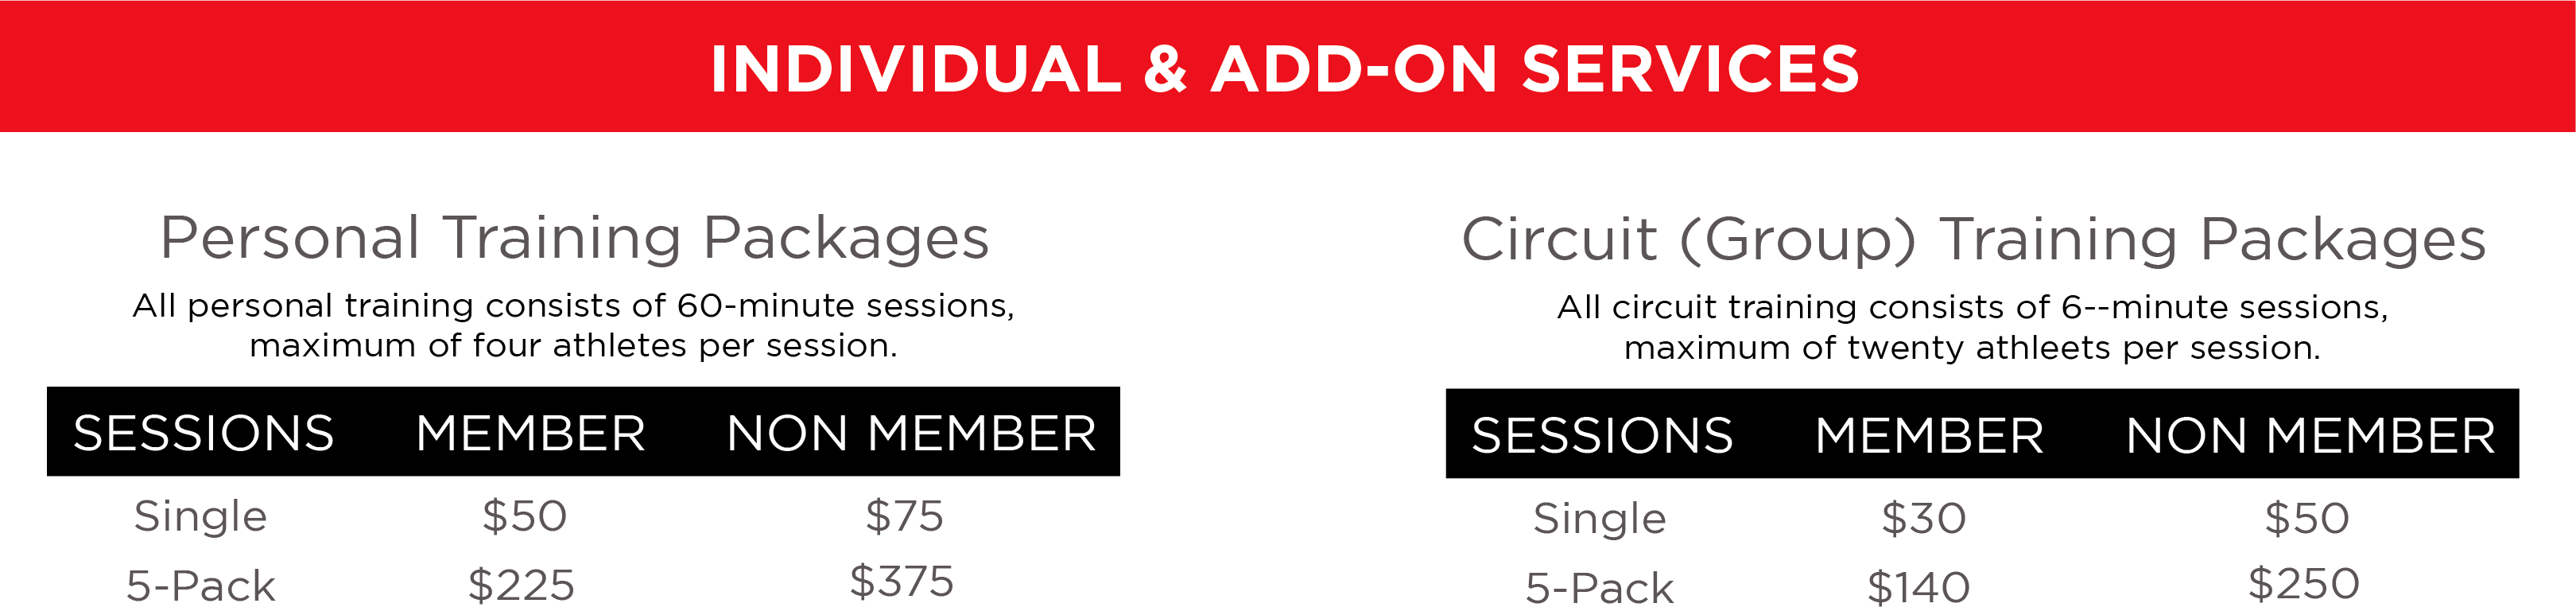 Individual And Add-On Services